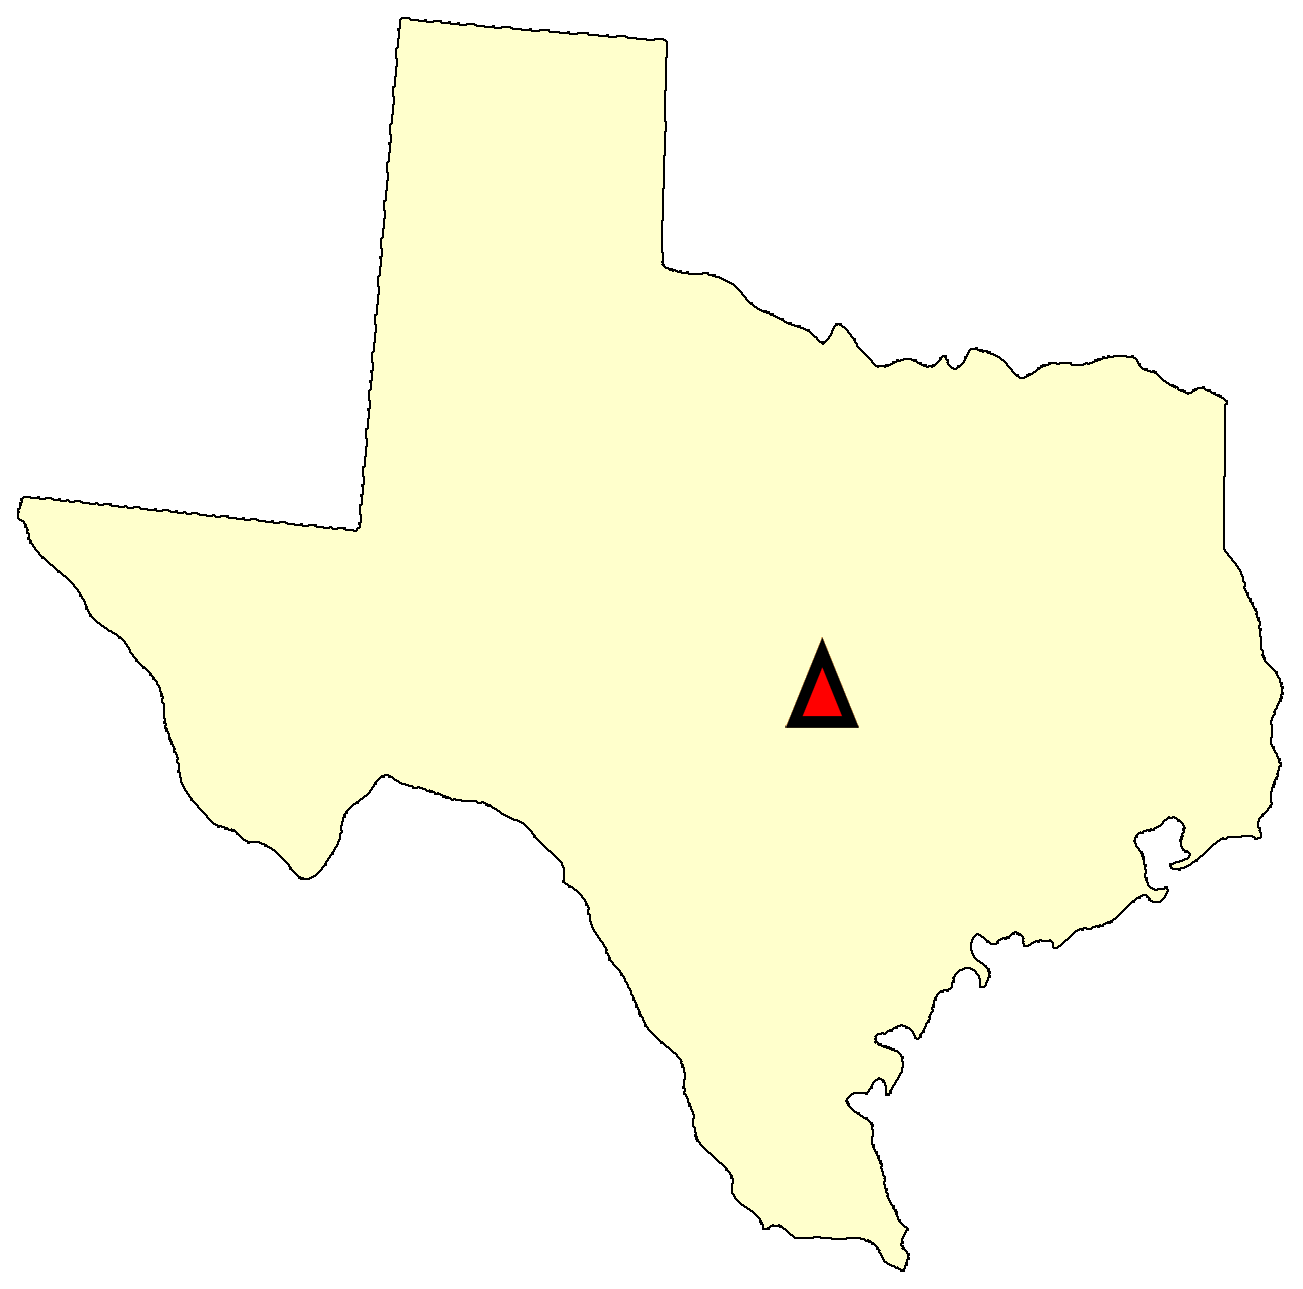 State map location for TX Austin